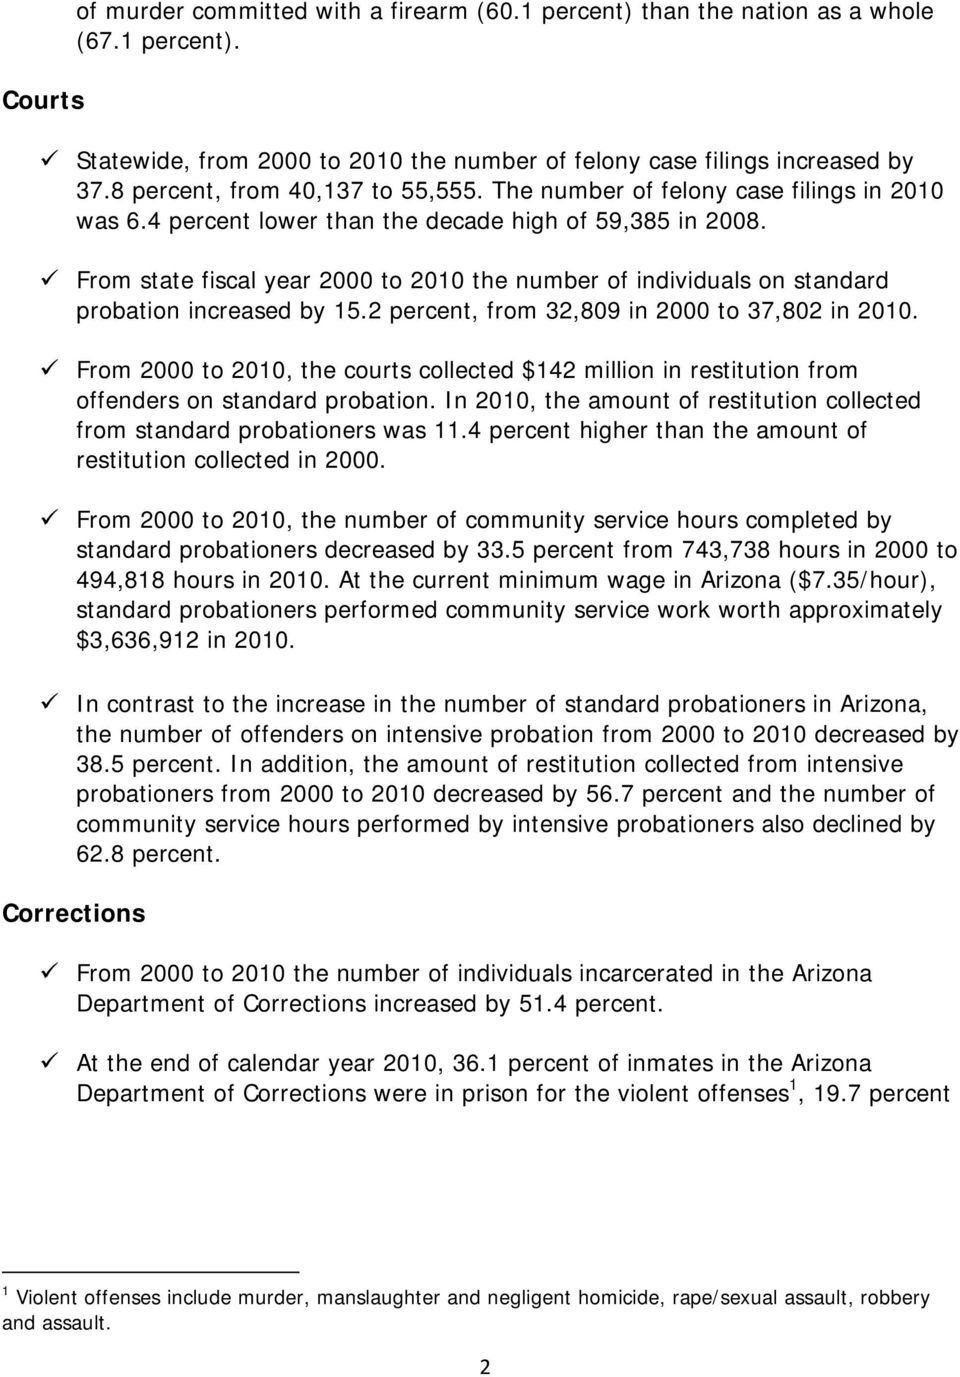 From state fiscal year 2000 to 2010 the number of individuals on standard probation increased by 15.2 percent, from 32,809 in 2000 to 37,802 in 2010.